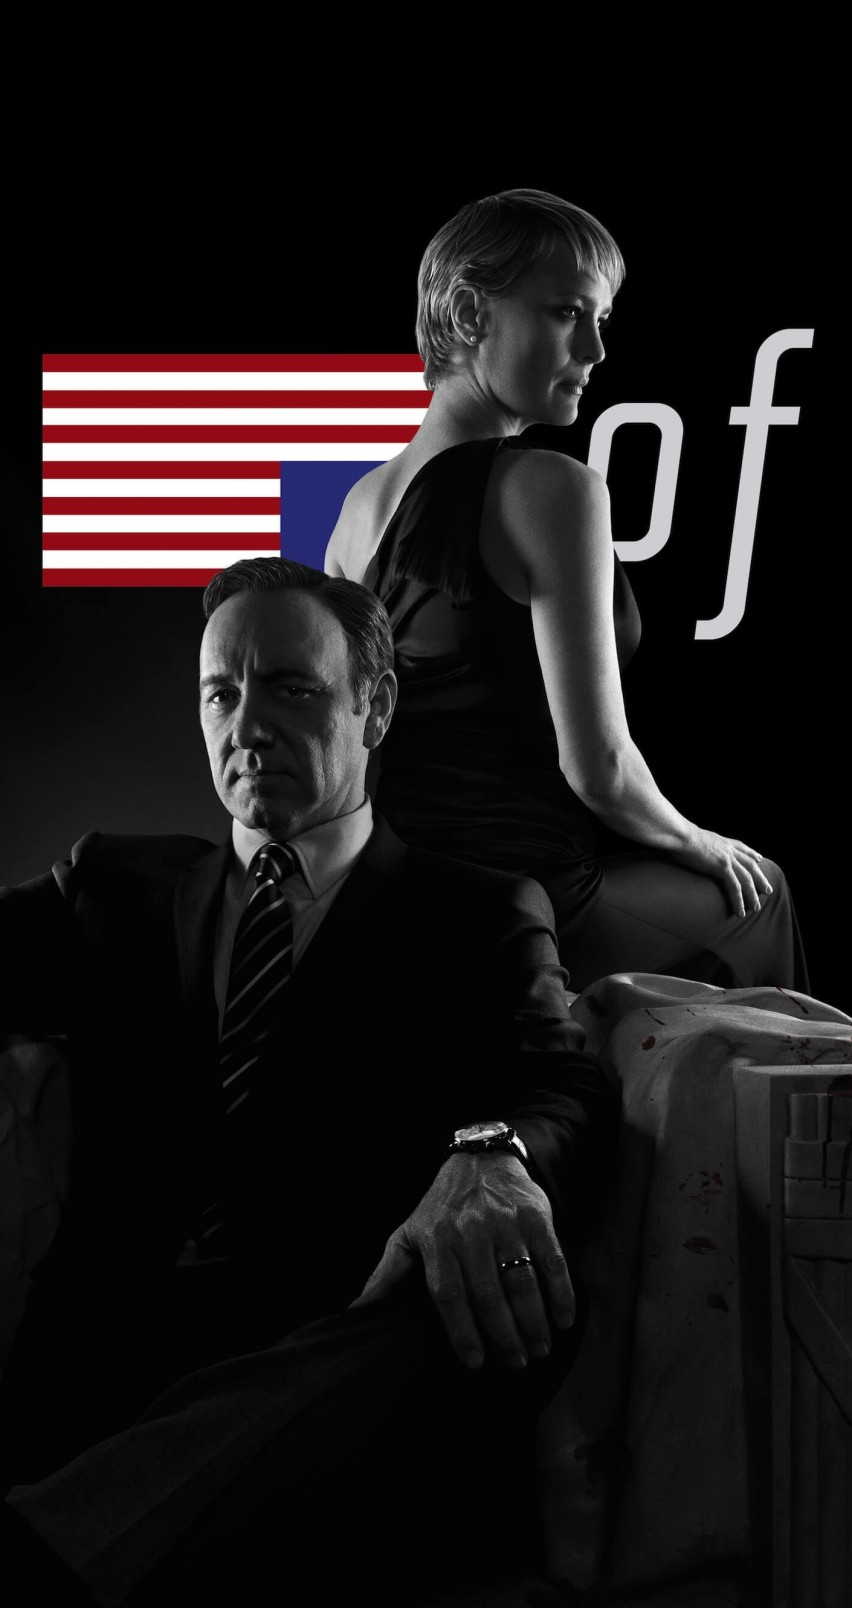 House of Cards - Black & White Wallpaper for Apple iPhone 6 / 6s